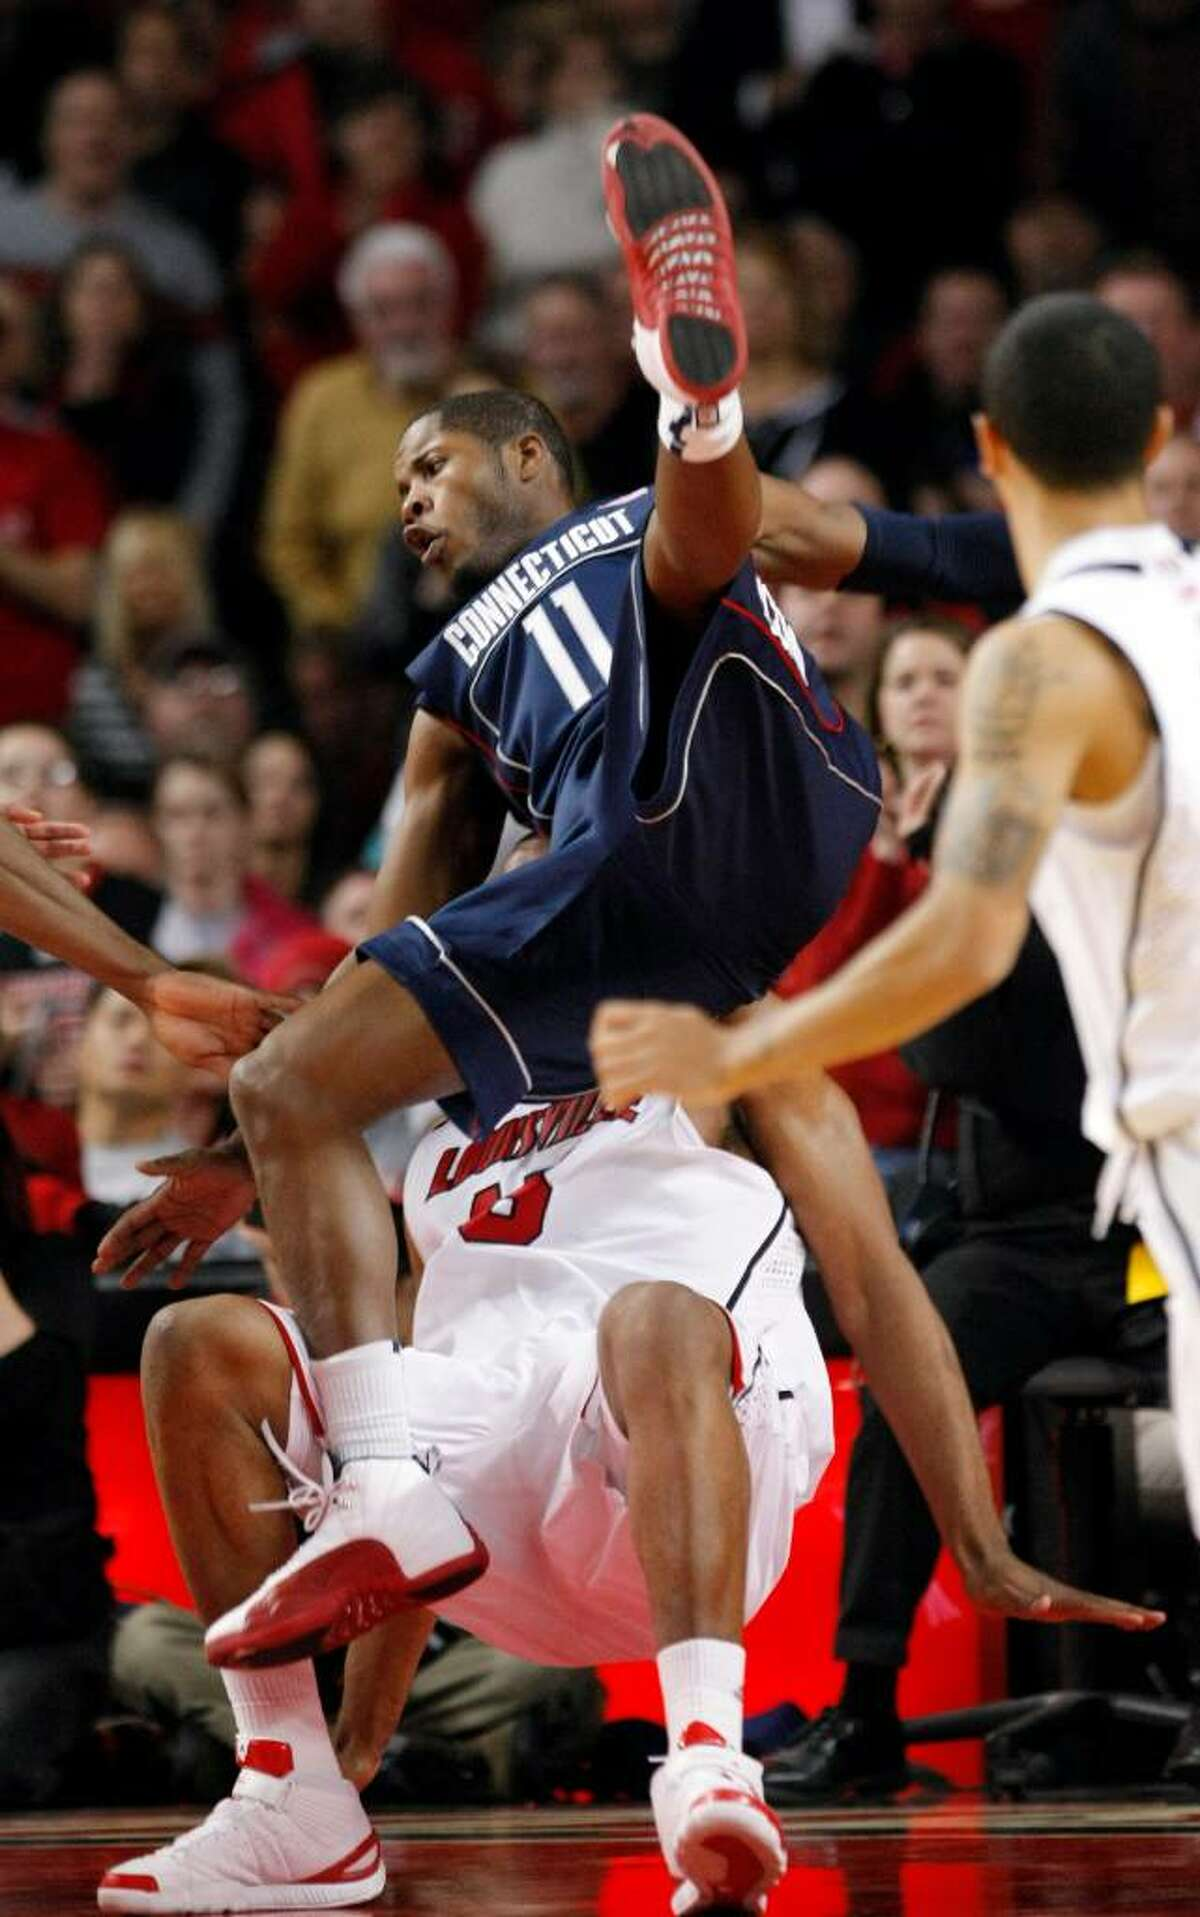 Connecticut's Jerome Dyson charges into Louisville's Samardo Samuels during the second half of an NCAA college basketball game in Louisville, Ky., Monday, Feb. 1, 2010. Dyson led all scorers with 18 points in the 82-69 Louisville win. (AP Photo/Ed Reinke)